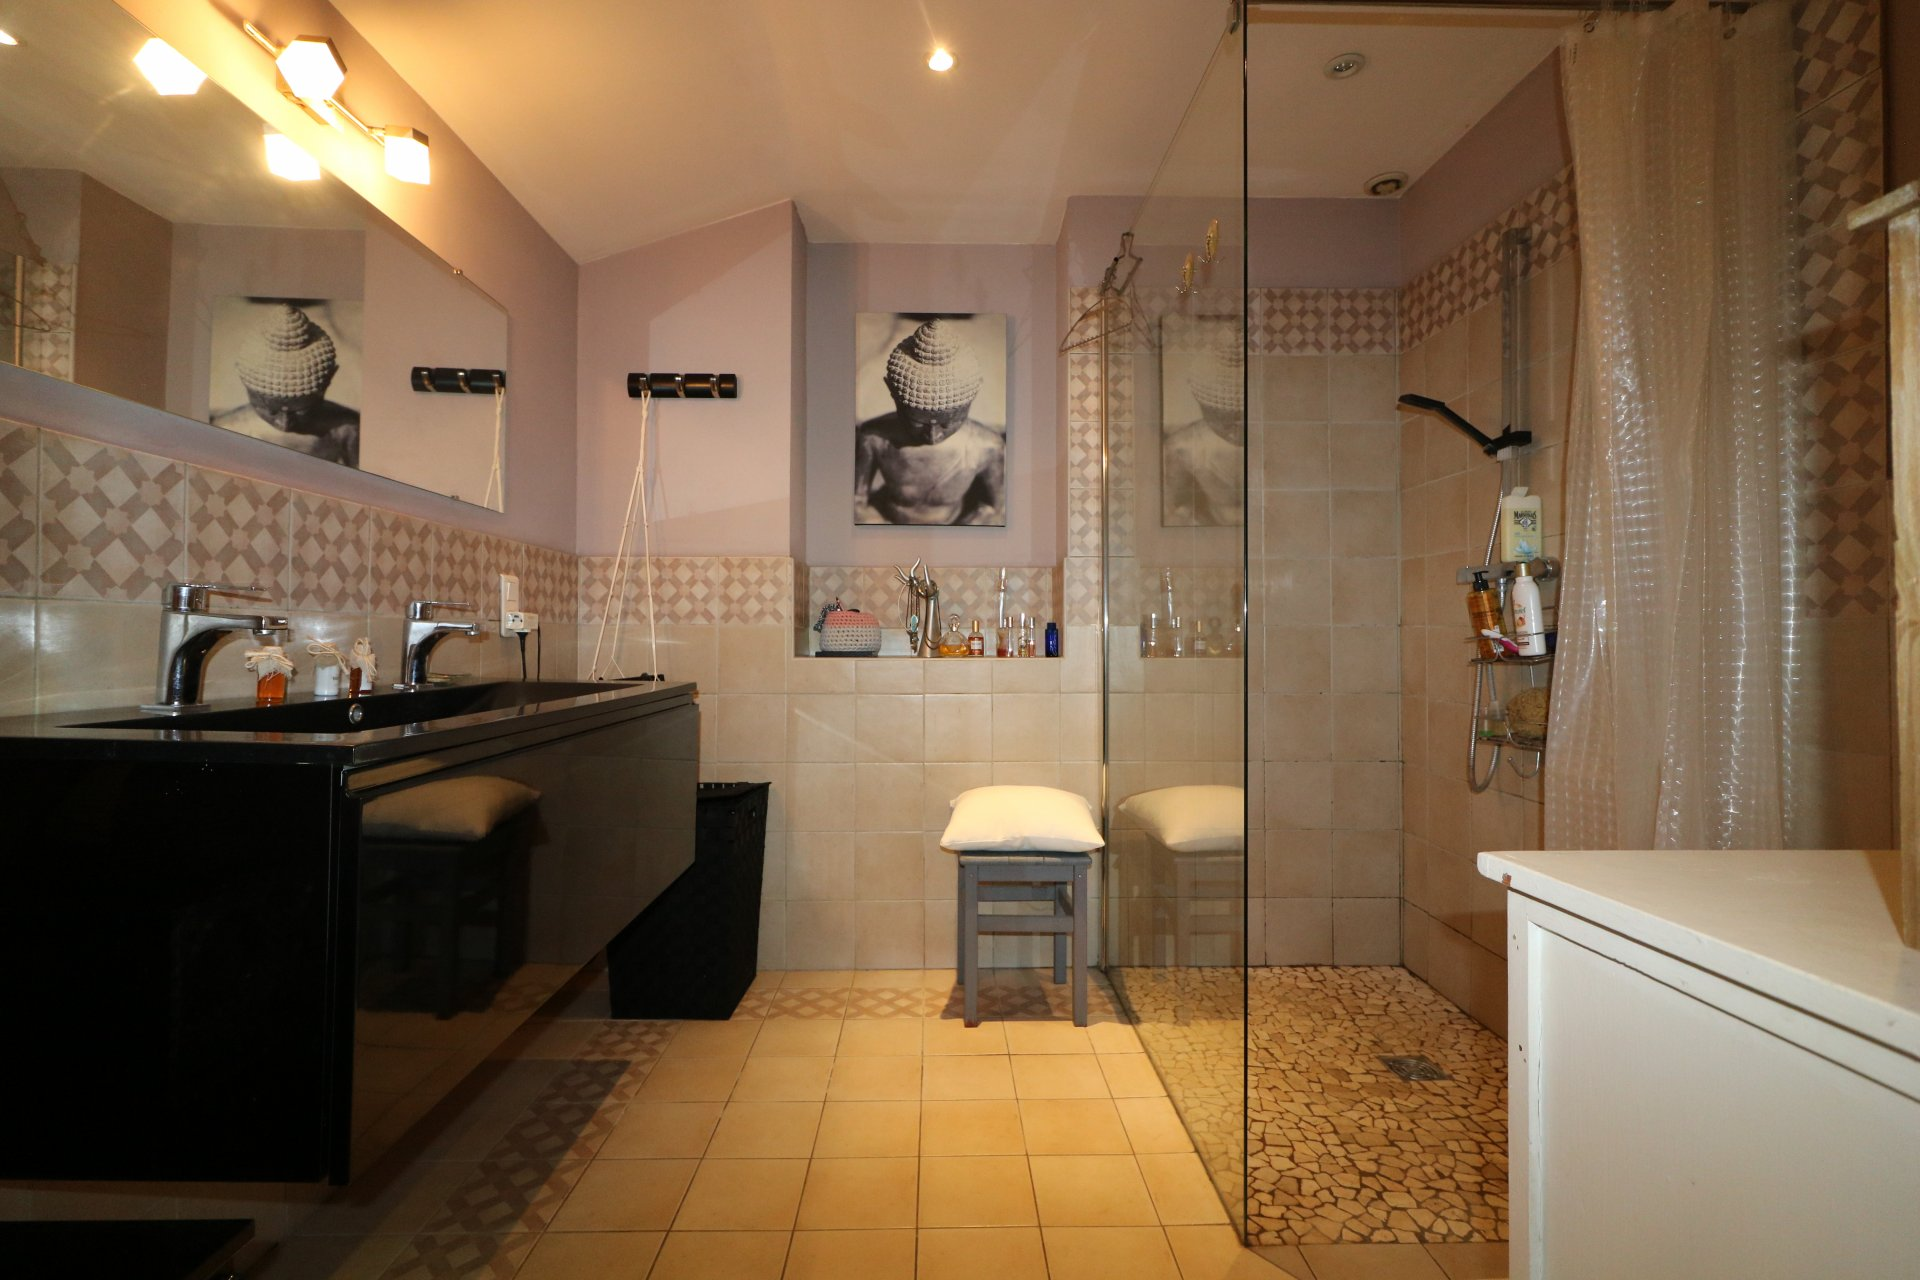 CANNES NEAR CITY CENTER, LARGE ONE BED ROOM FLAT  IN PEACE